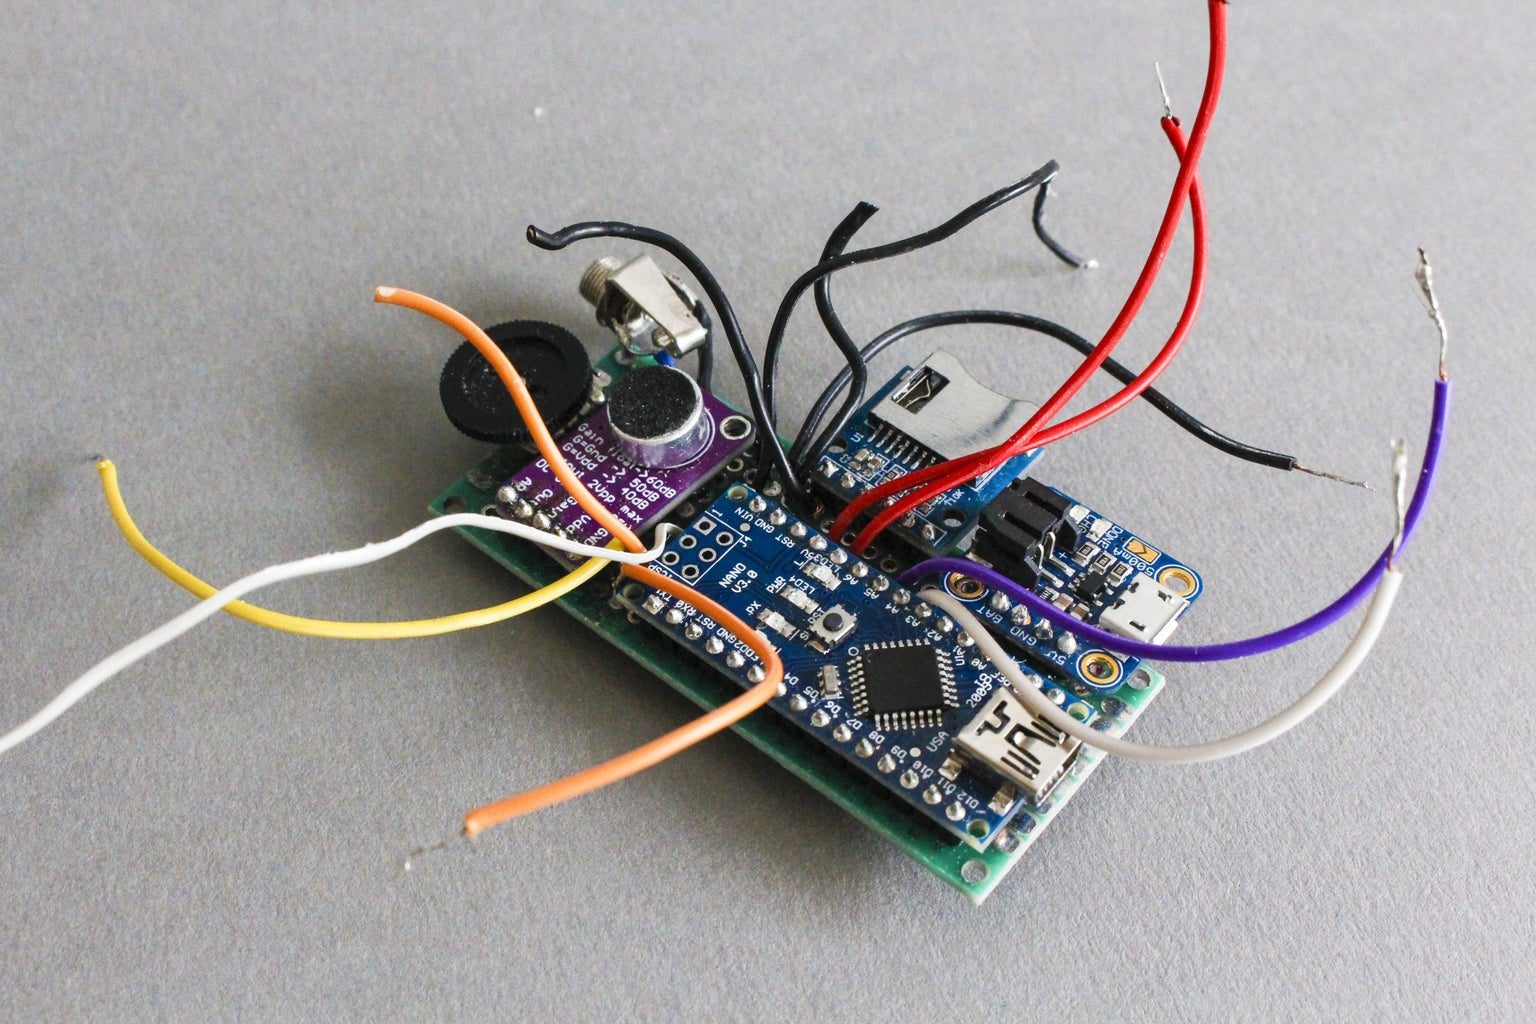 Wiring (and Soldering)